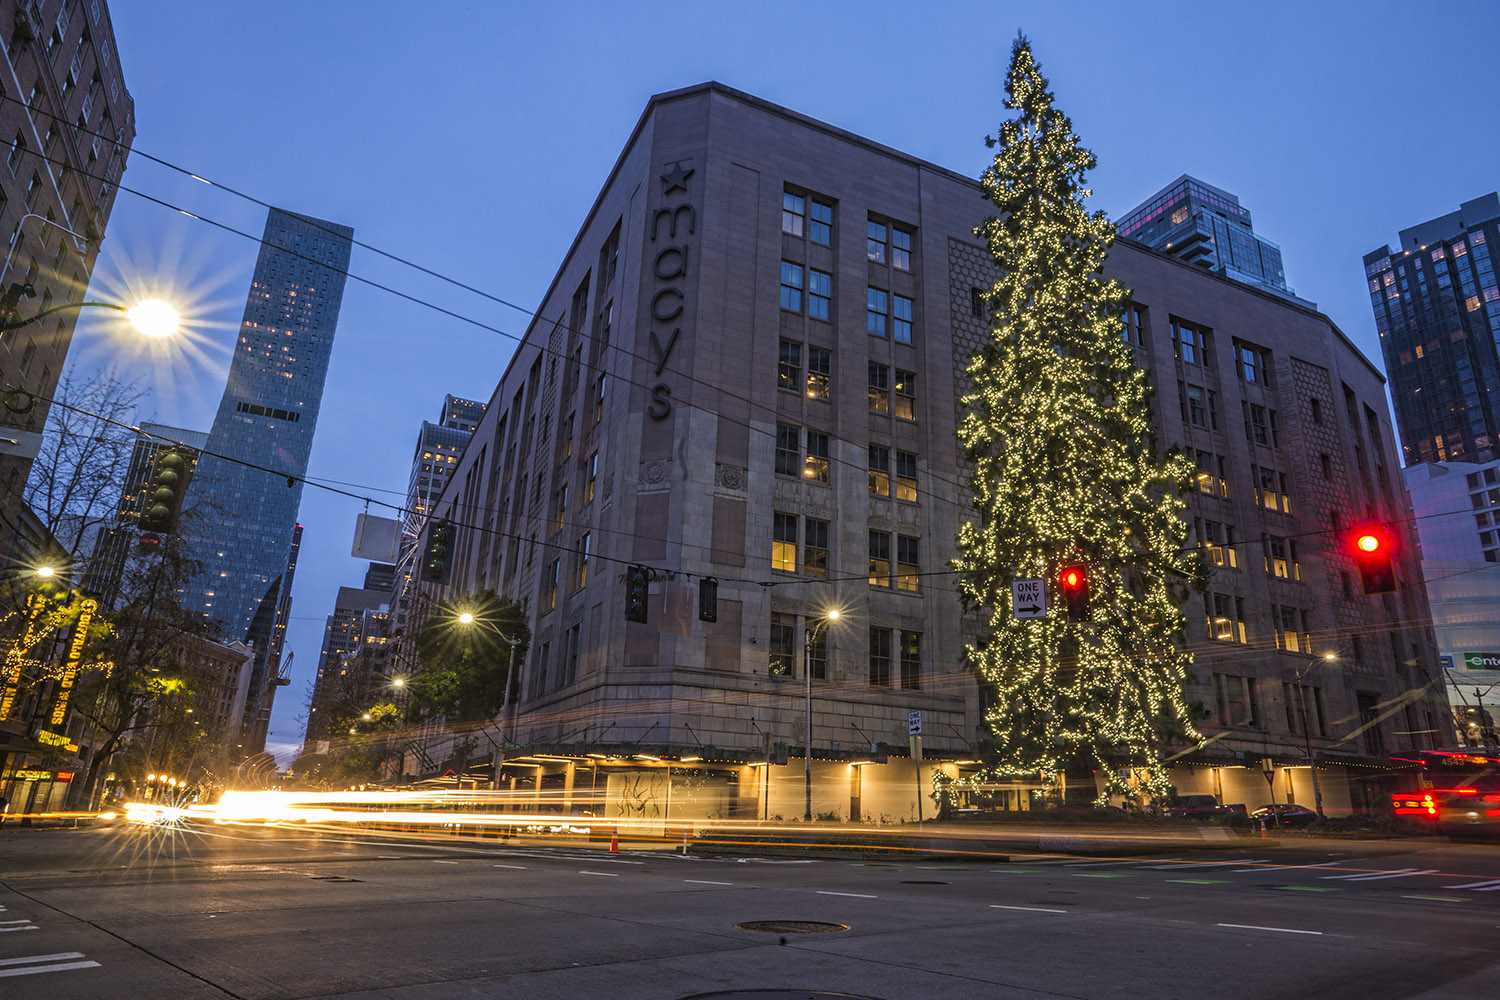 Christmast treet at the intersection of Fourth Avenue, Olive Way & Stewart Street in downtown Seattle. (December 18, 2020).